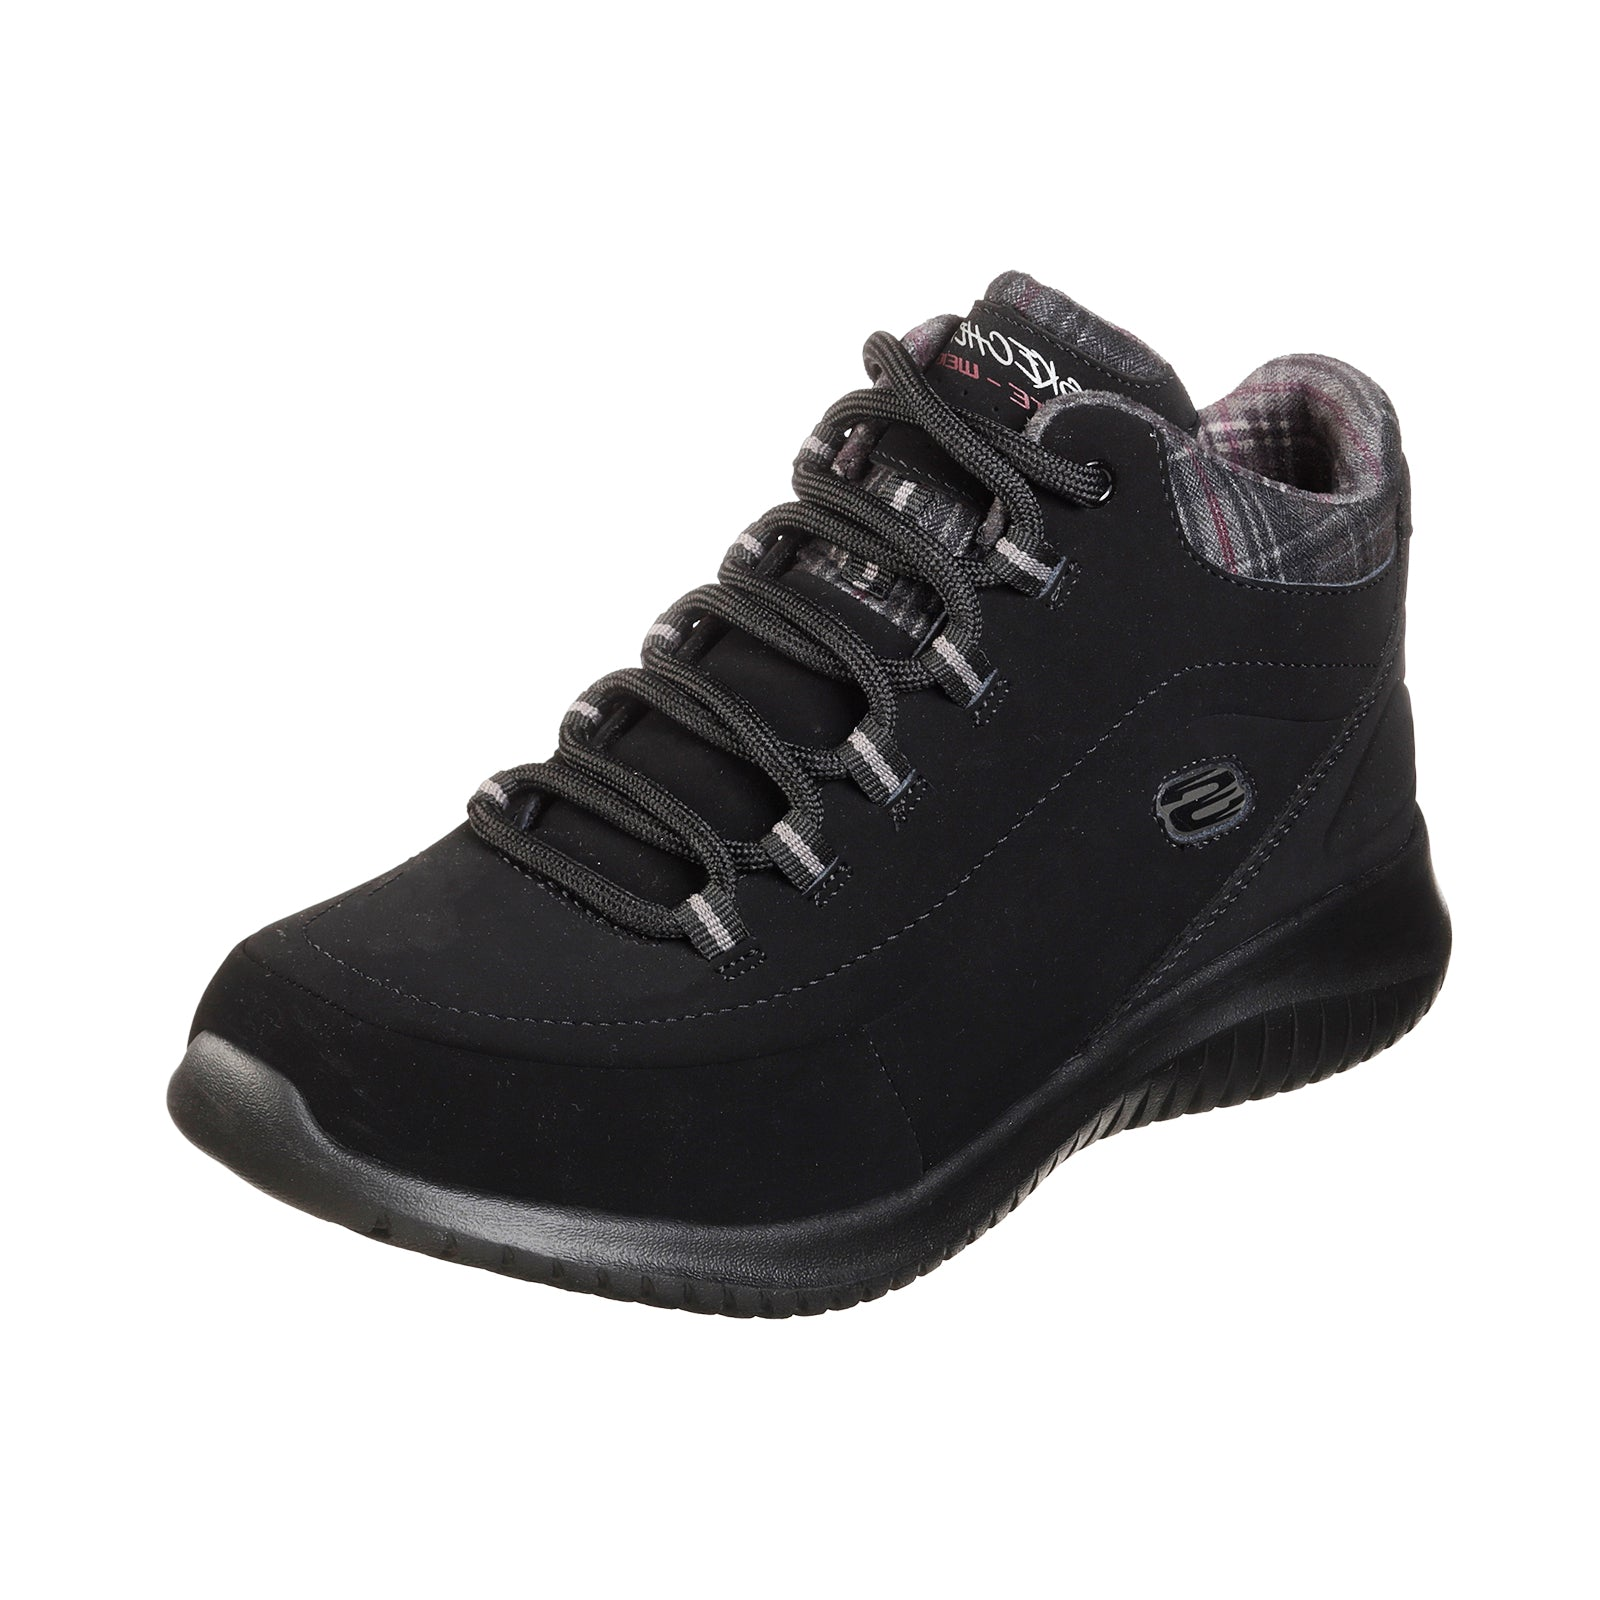 Ghete Skechers 12918 BBK